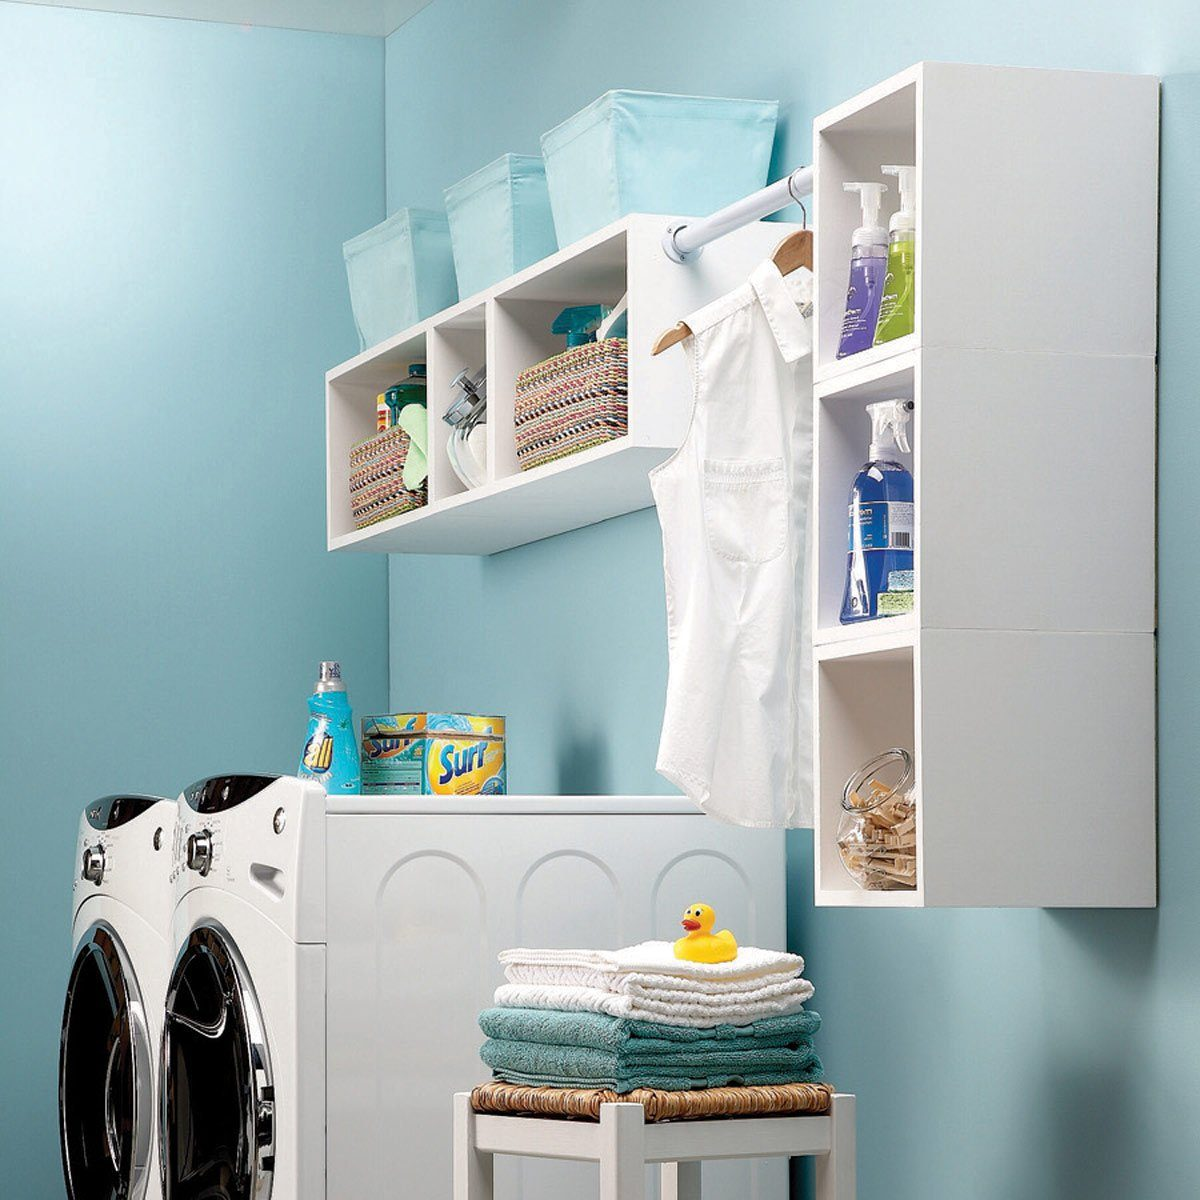 25 Inexpensive Laundry Room Updates You Can Diy Family Handyman